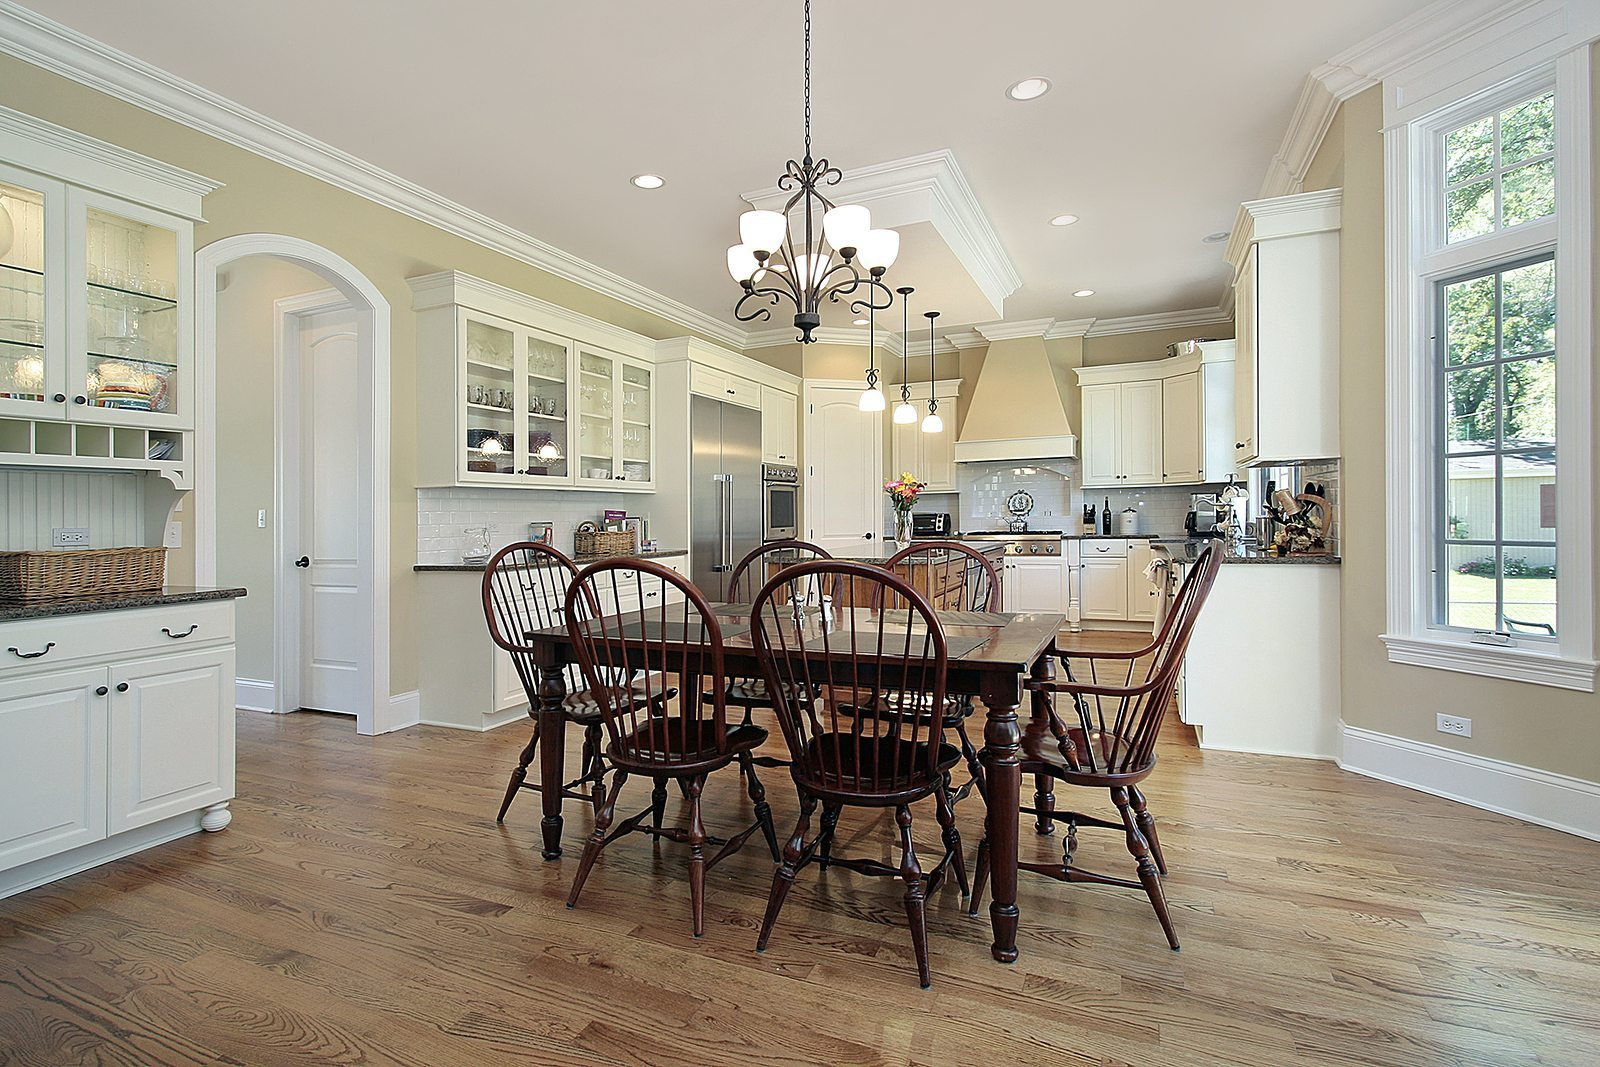 Kitchen with island and a chandelier